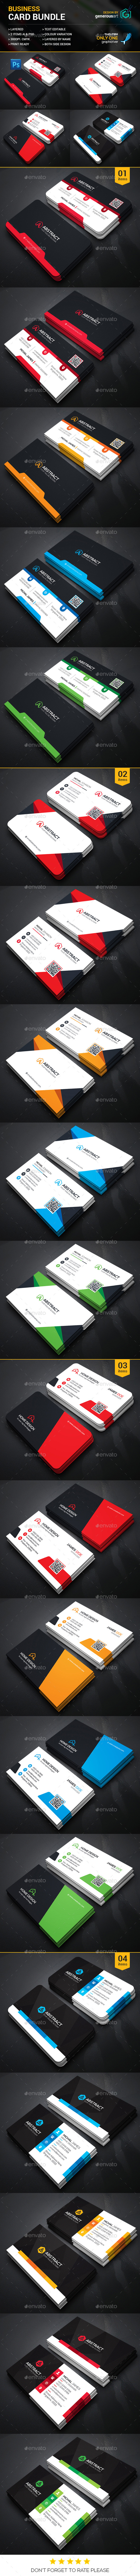 Business Card Bundle 4 in 1 - Corporate Business Cards